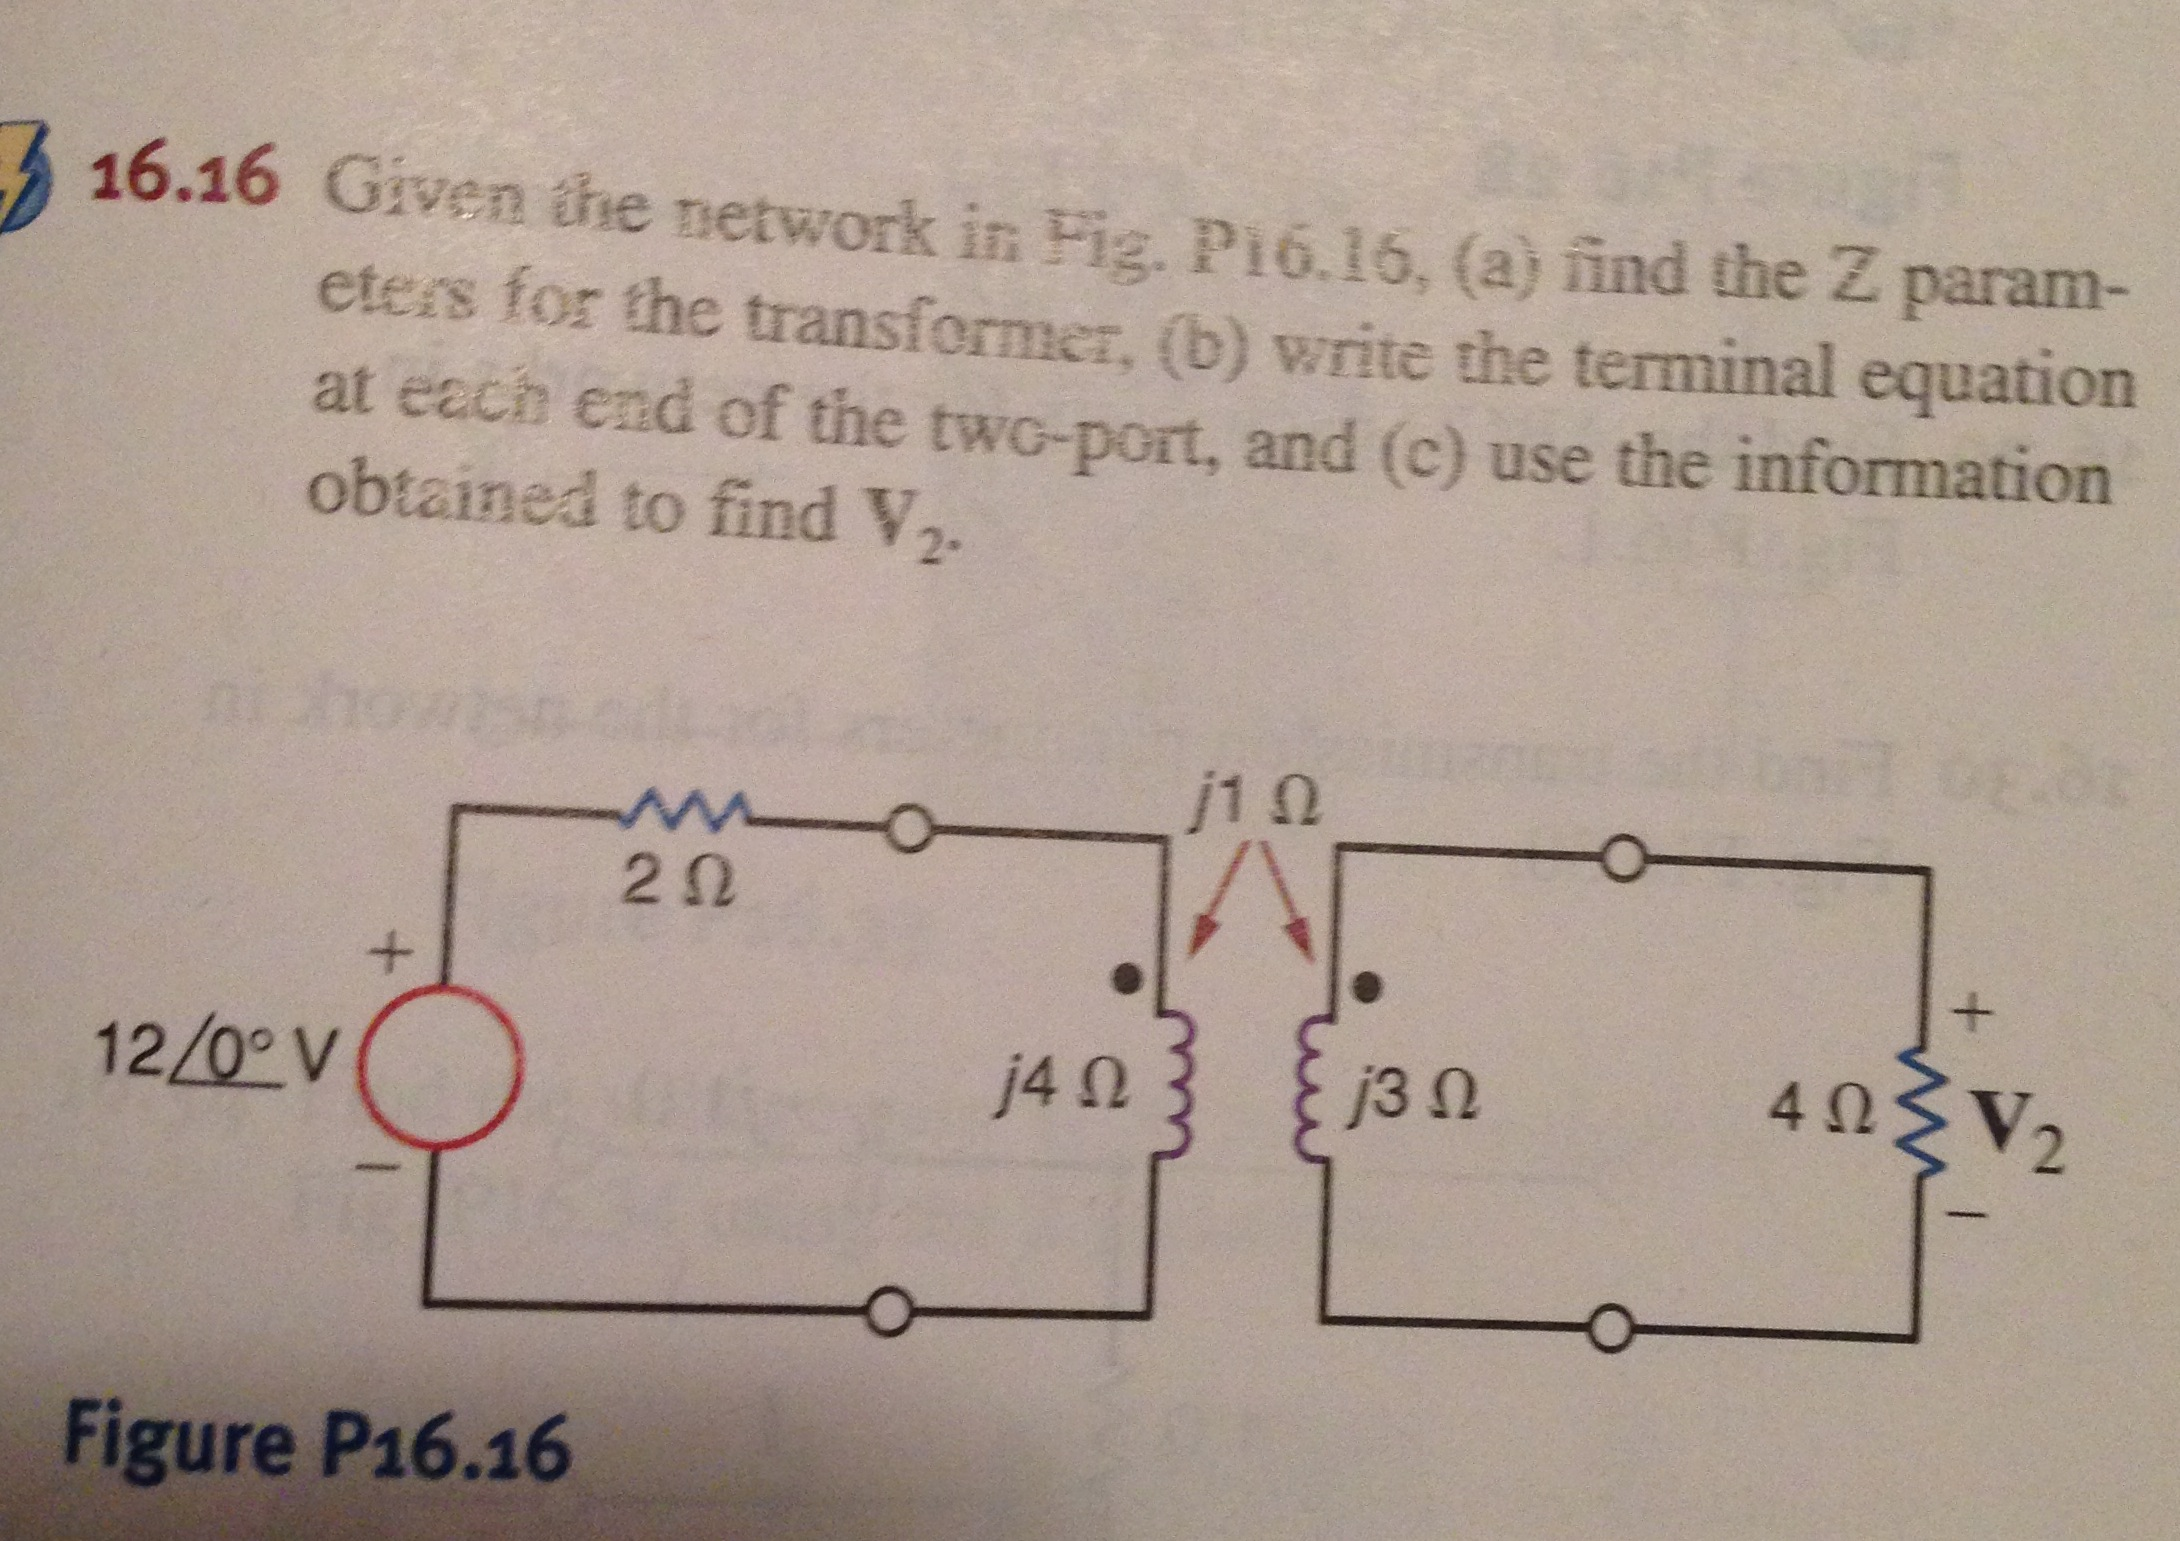 Given the network in Fig. P16.16 (a) find the Z pa